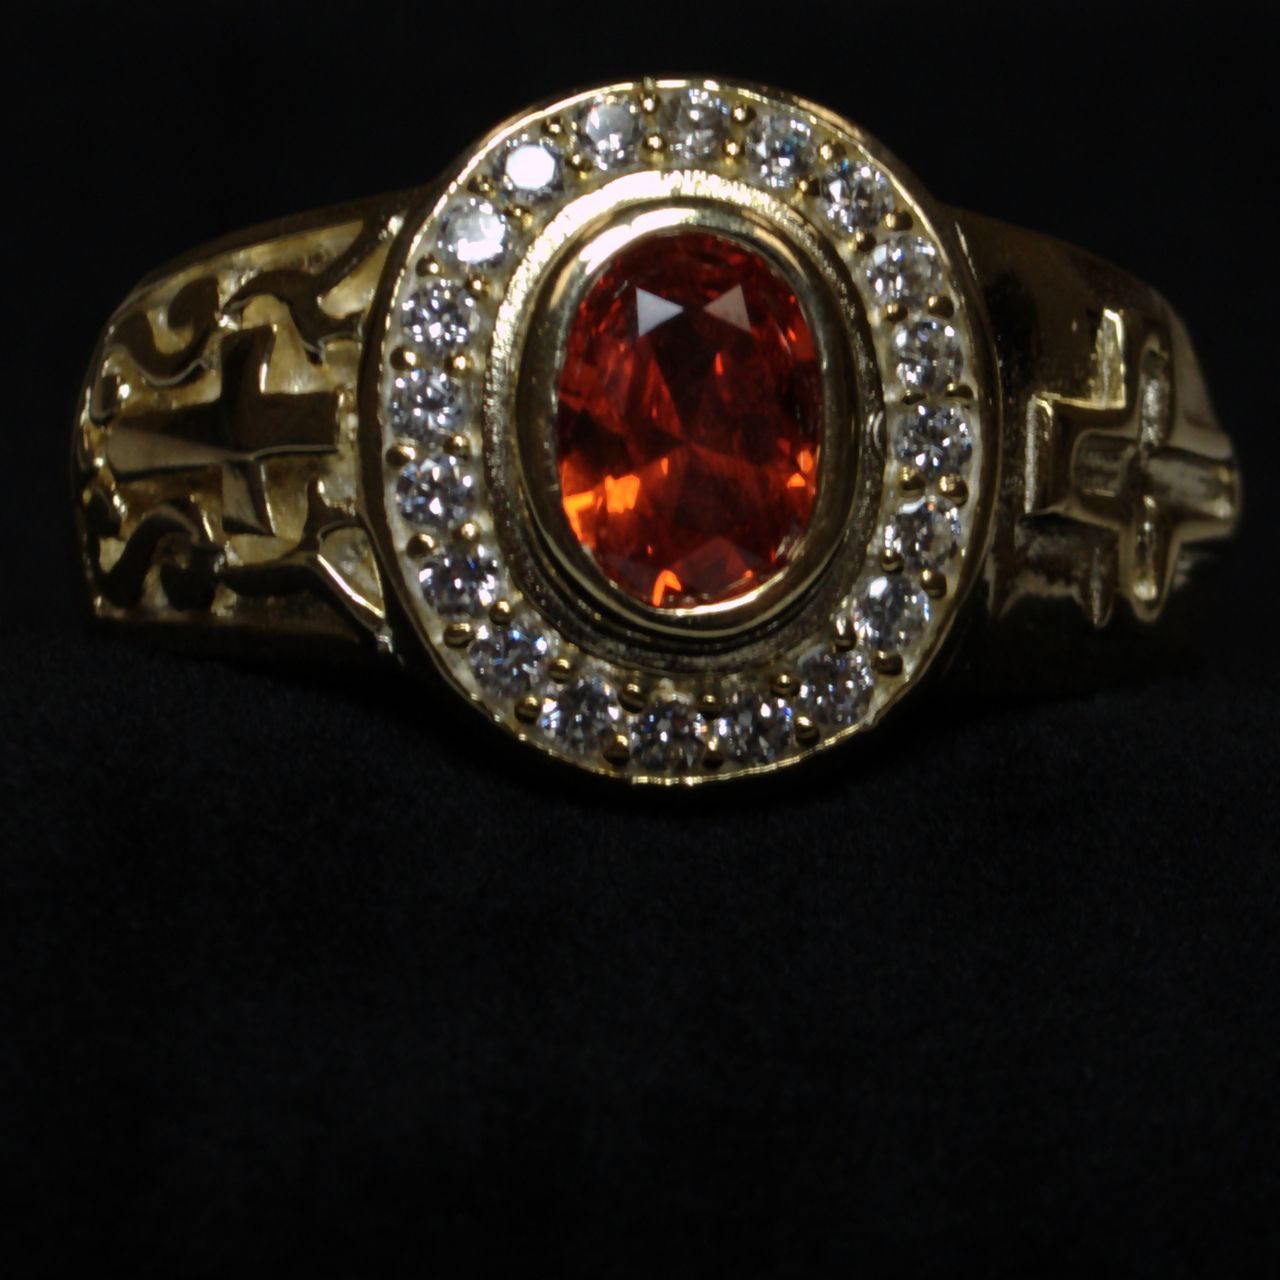 Clergy Ring with Red Stone - Gold w/ Red